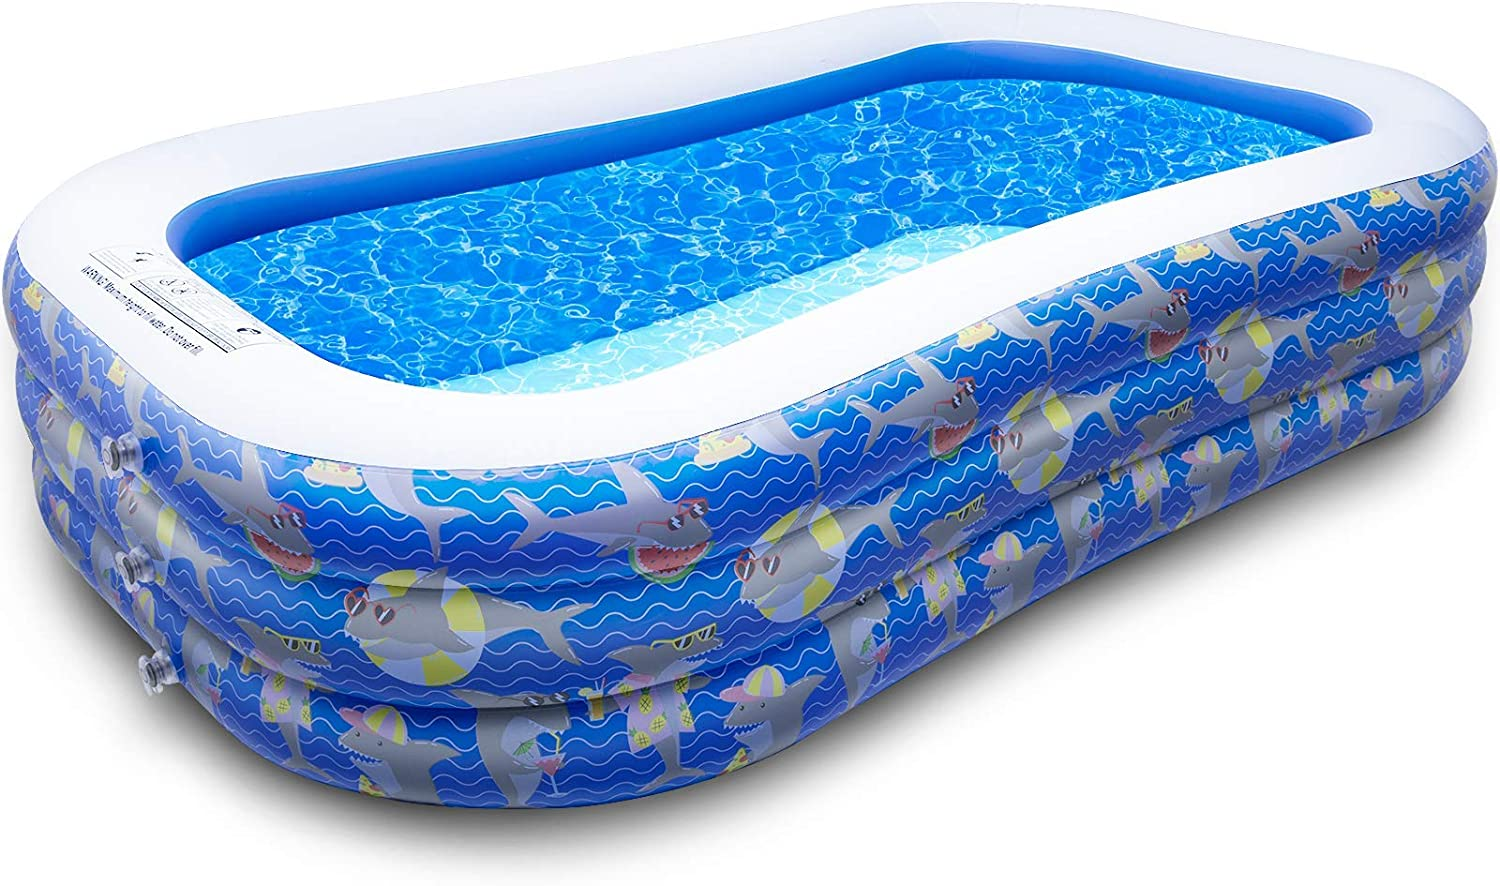 Decorlife Fees free!! Cute New sales Inflatable Pool Durable Swimming for Adul 2